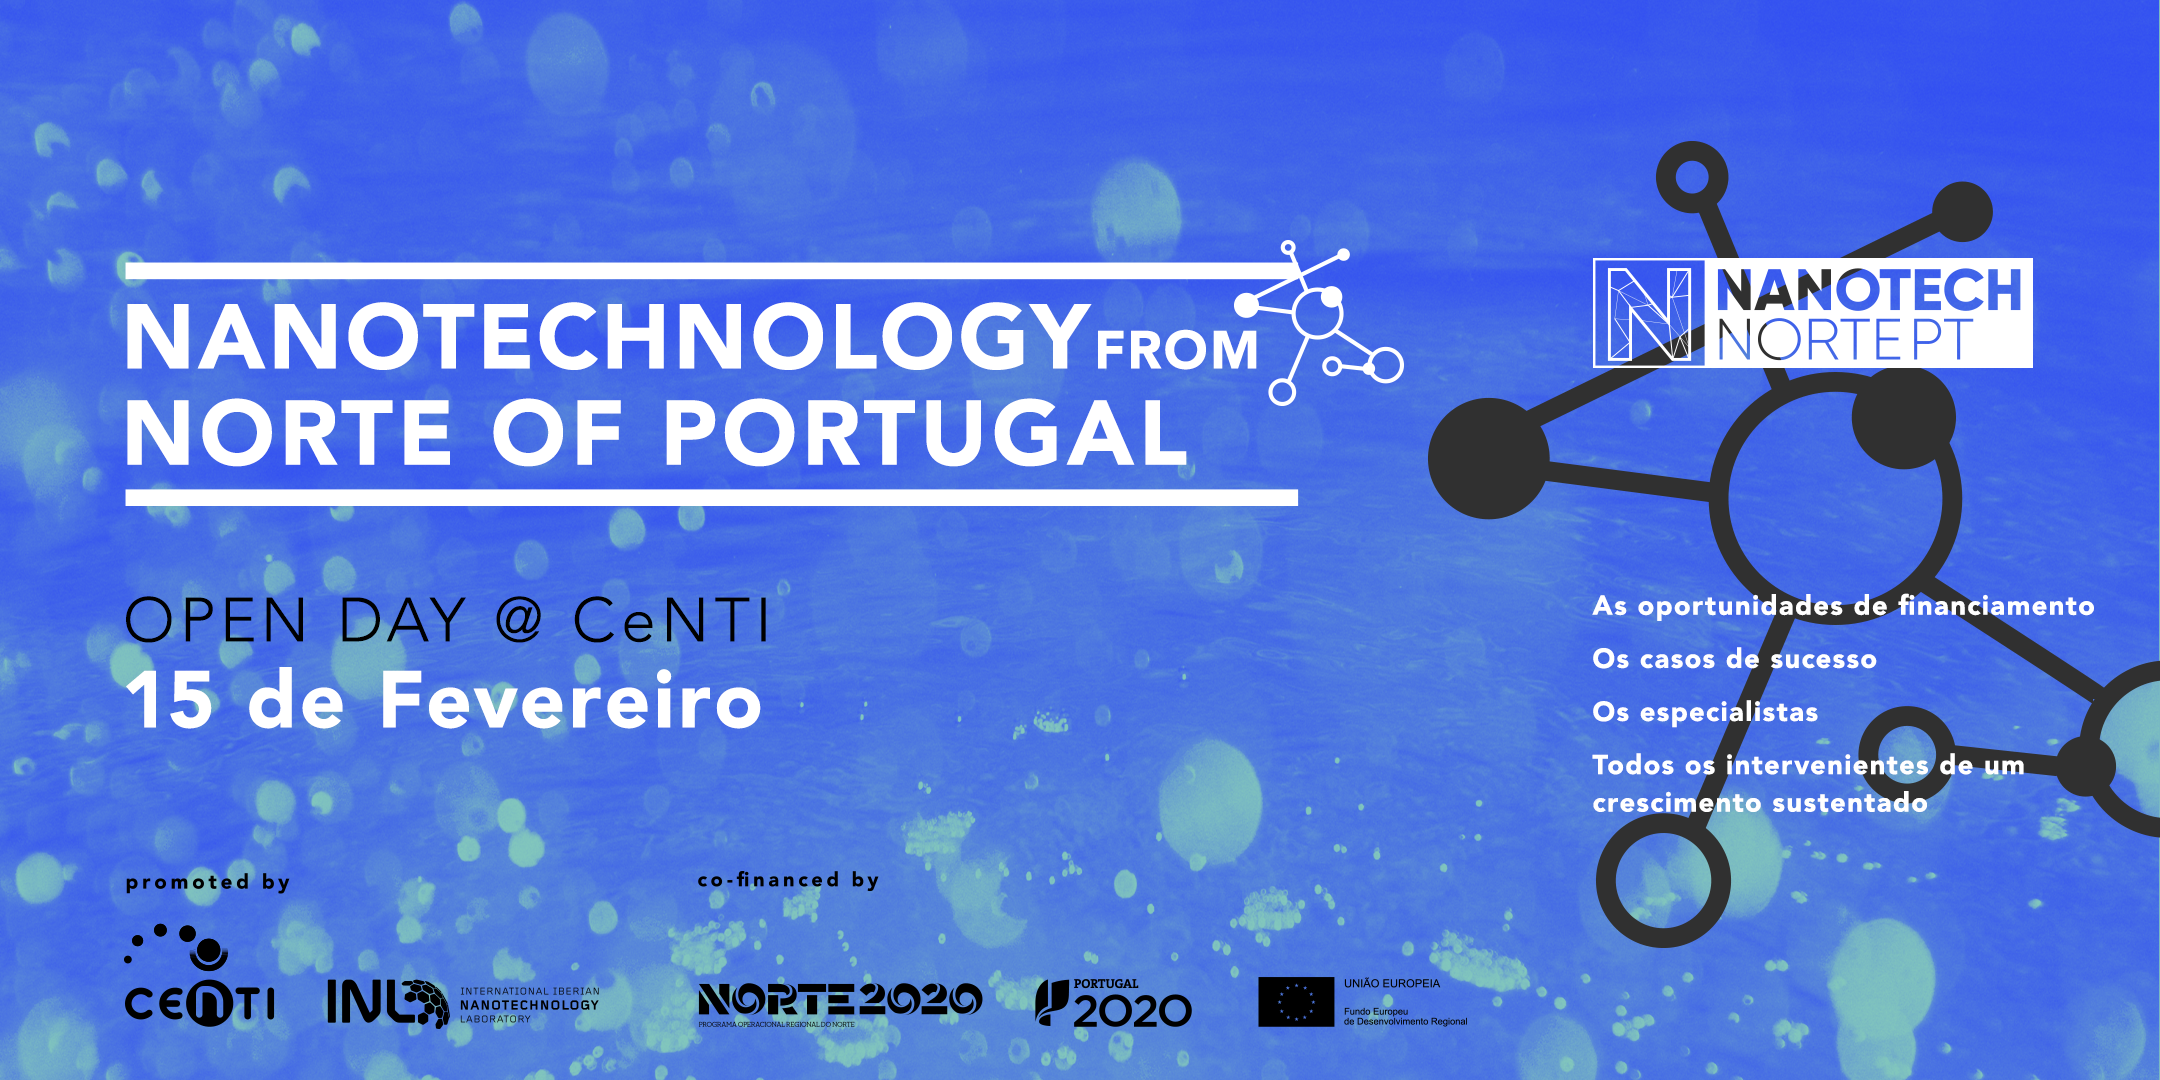 NANOTECHNOLOGY FROM NORTE OF PORTUGAL - OPEN DAY@CeNTI